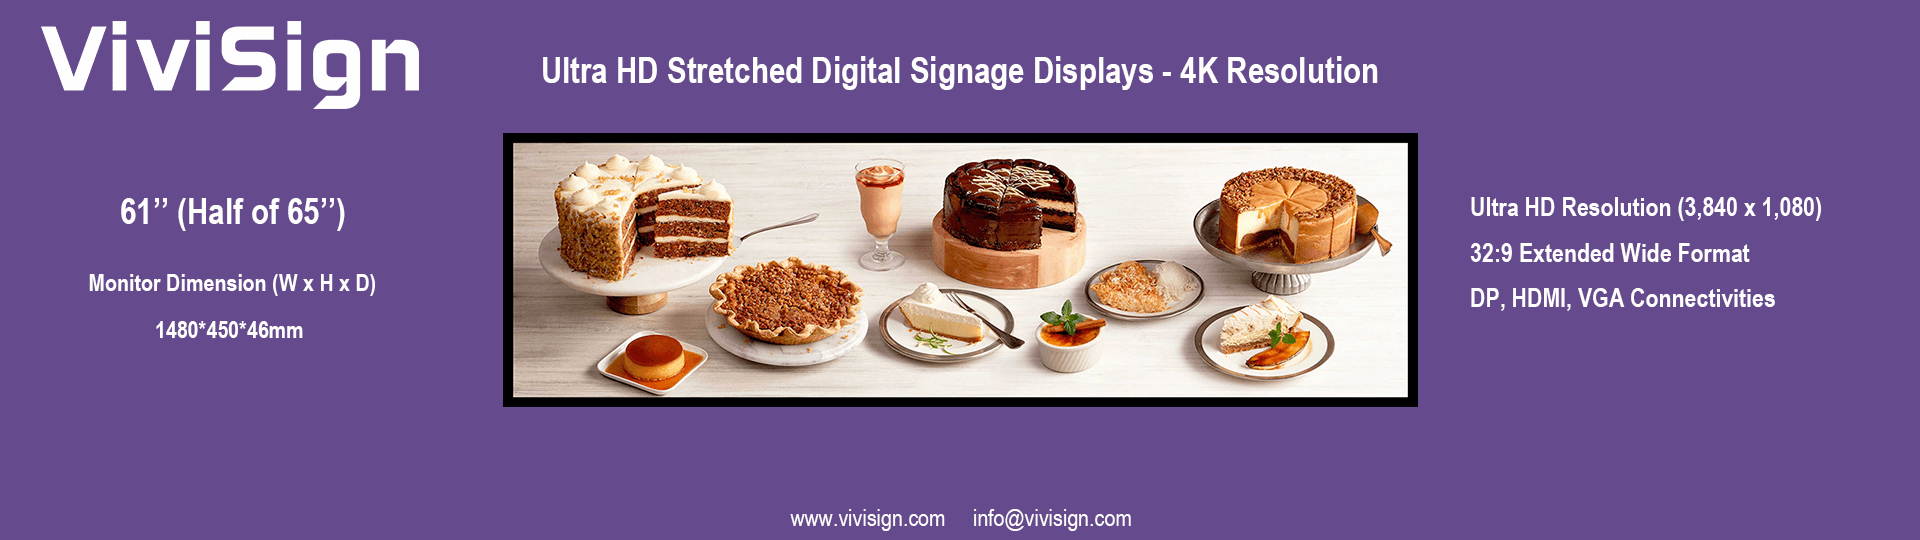 4K Stretched Displays